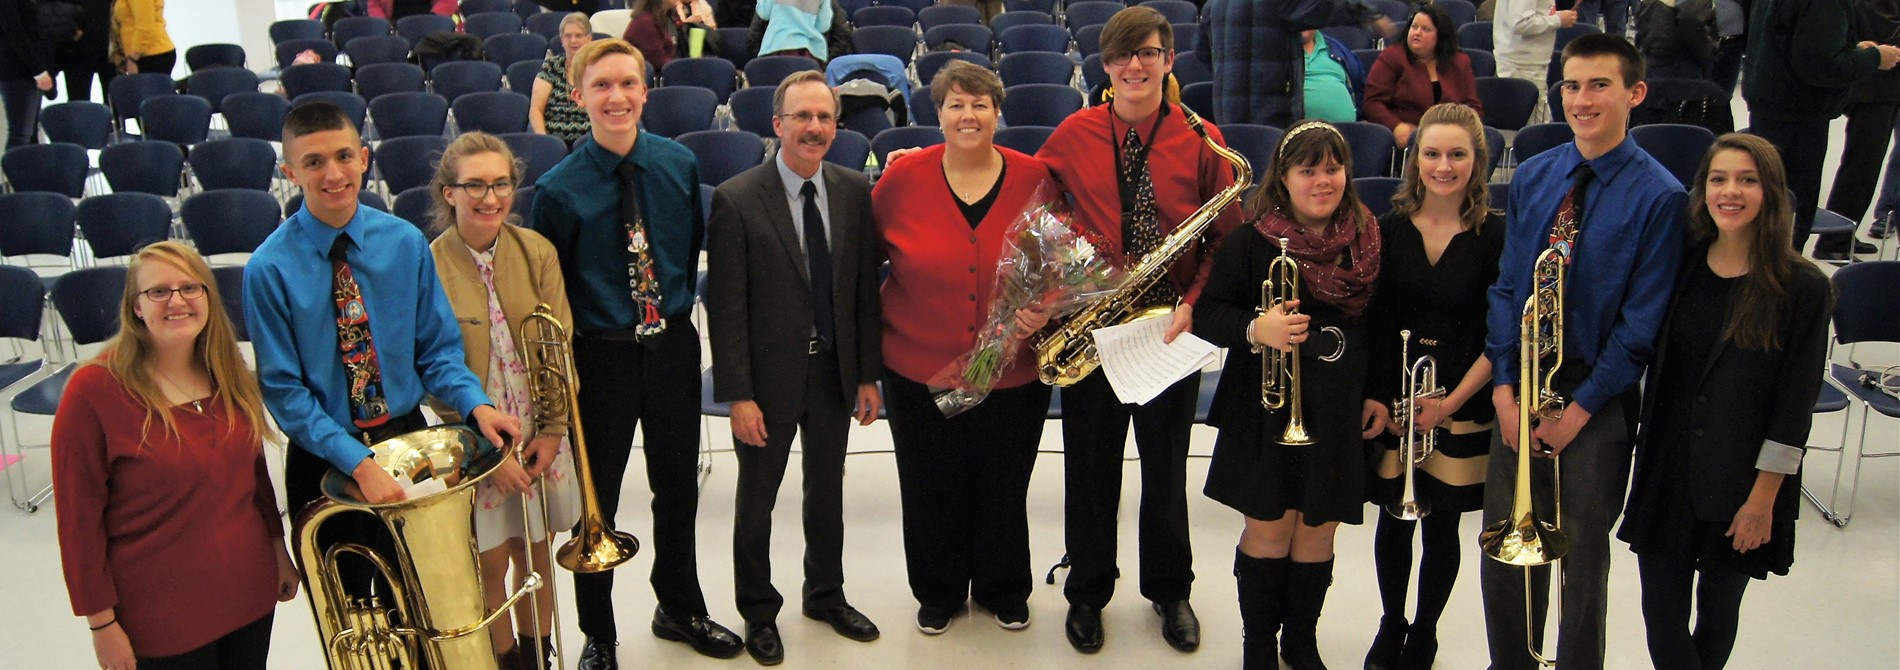 Senior Band Members - Winter Holiday Concert